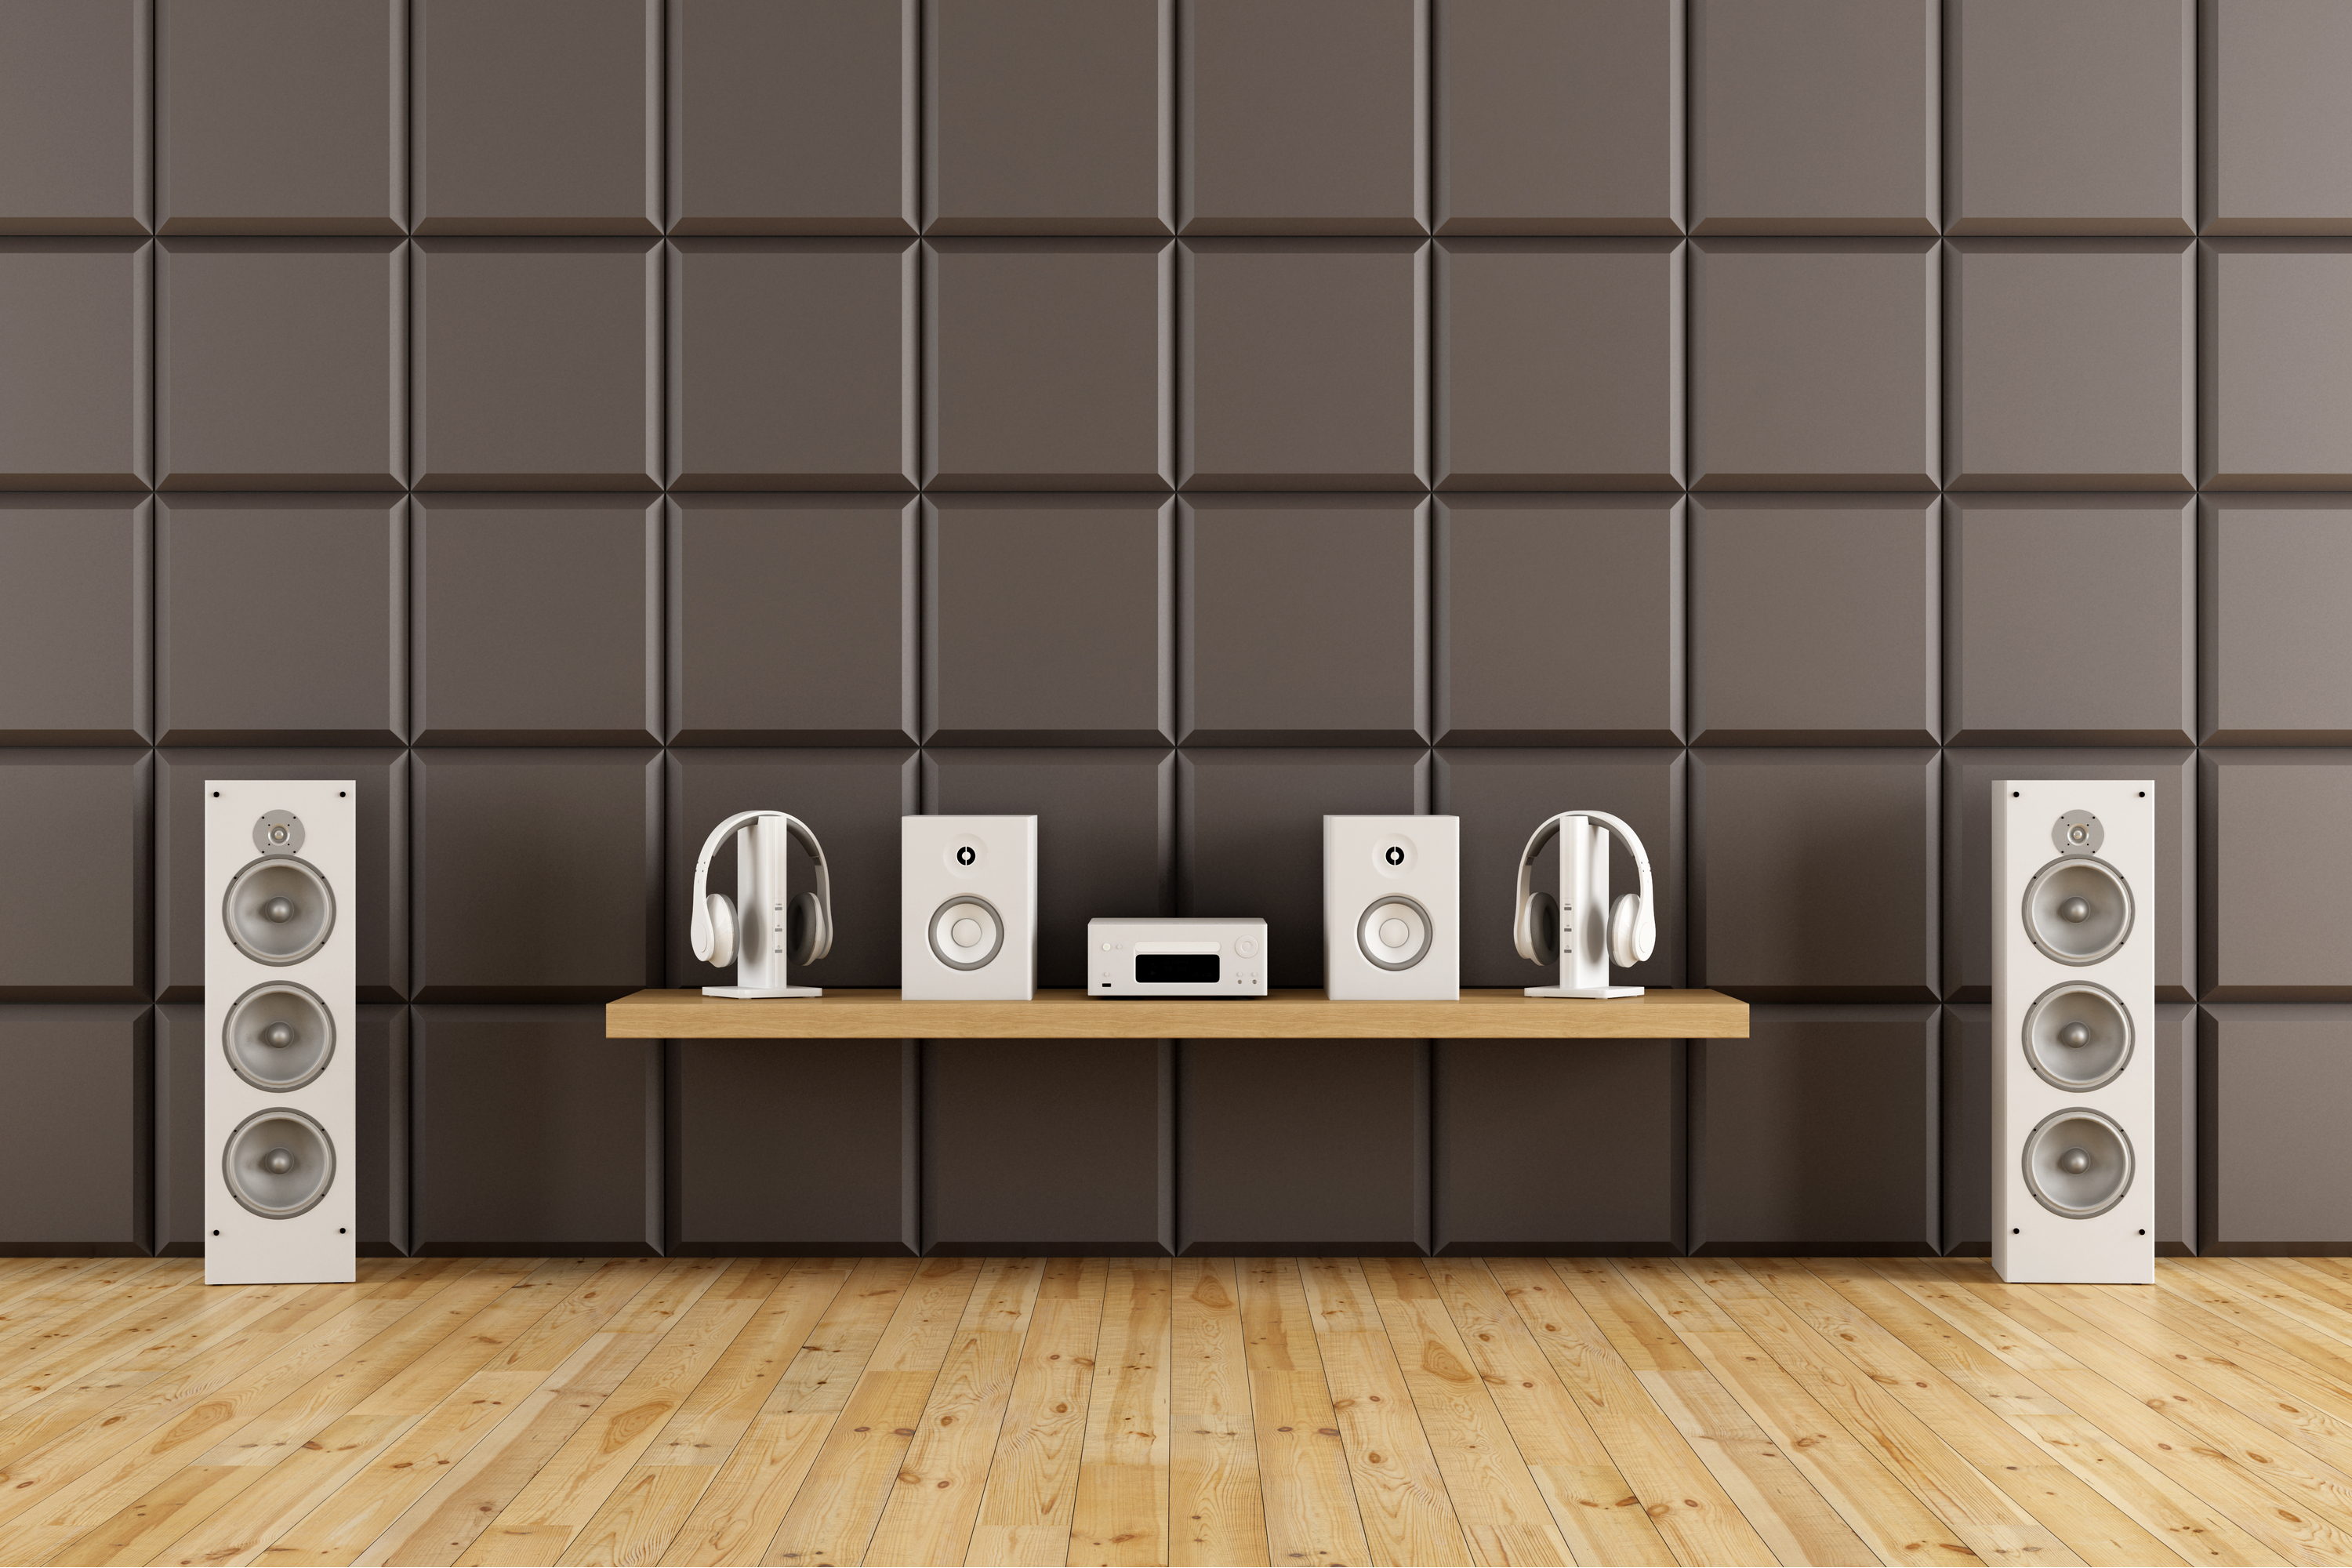 If you've ever considered having an audio room in your home, you should do it! These audio room ideas are amazing. See how having an audio room can change your life.